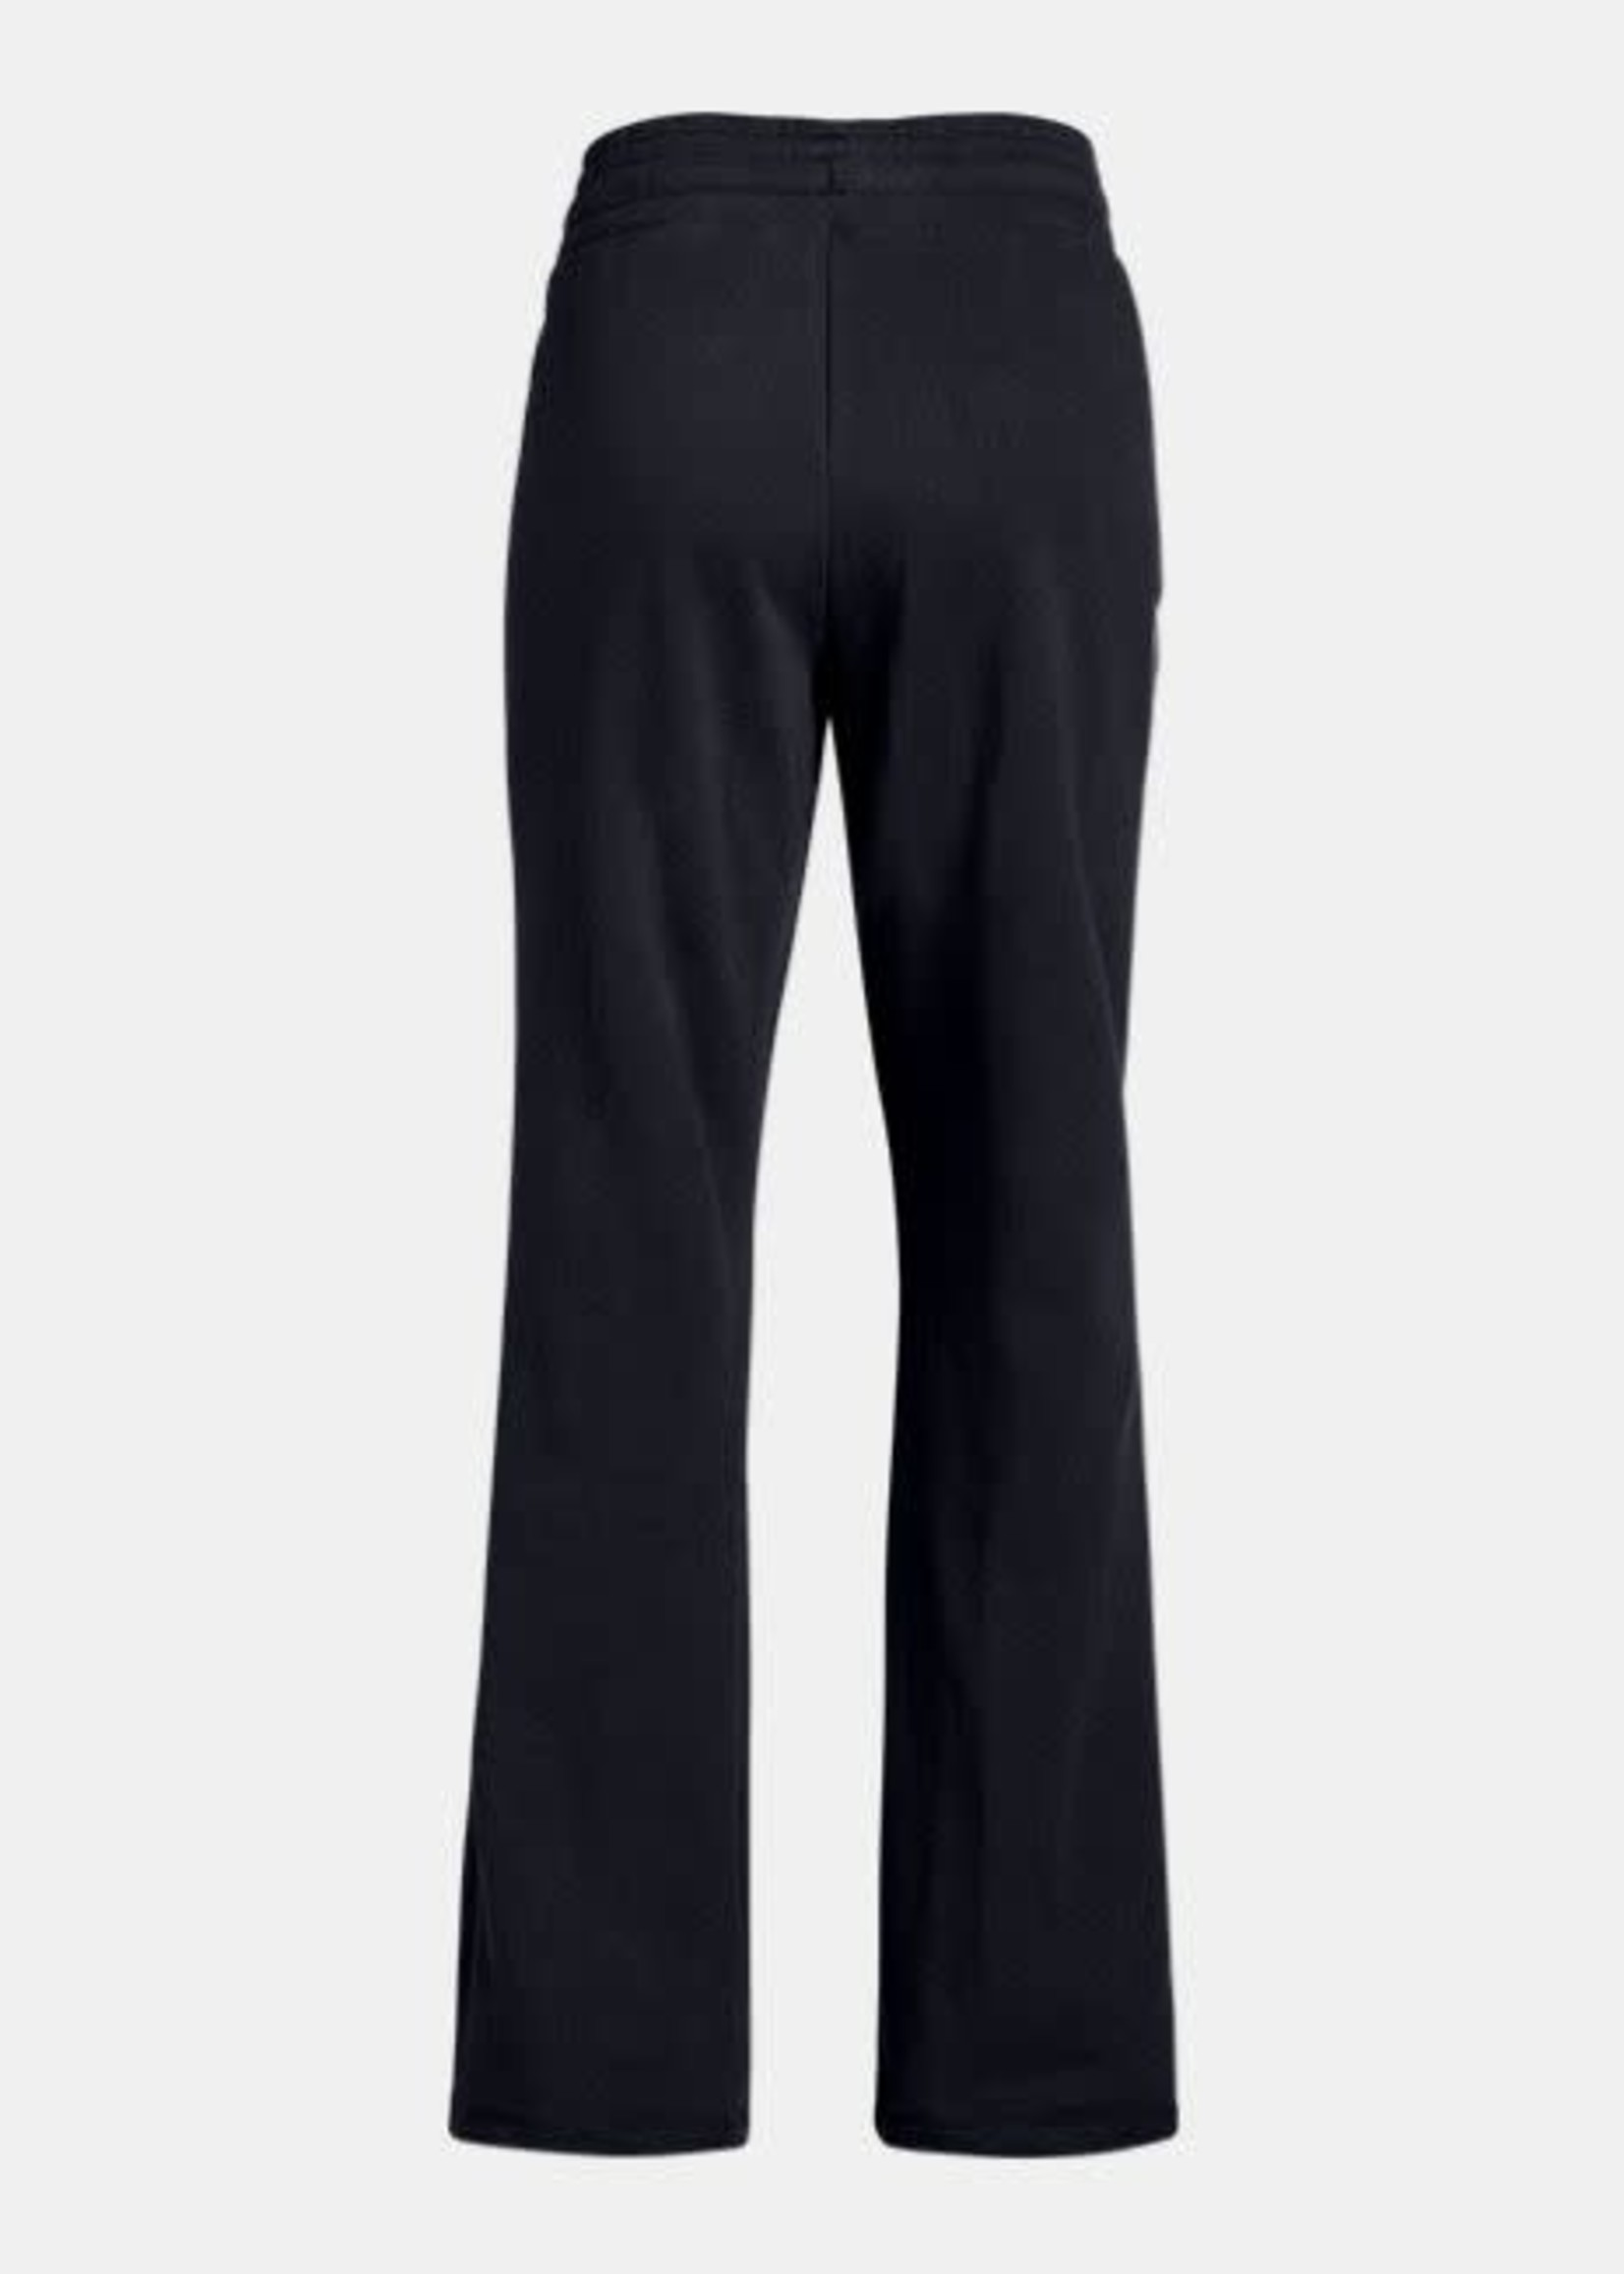 Under Armour RIVAL TERRY TRACK PANT 1327358